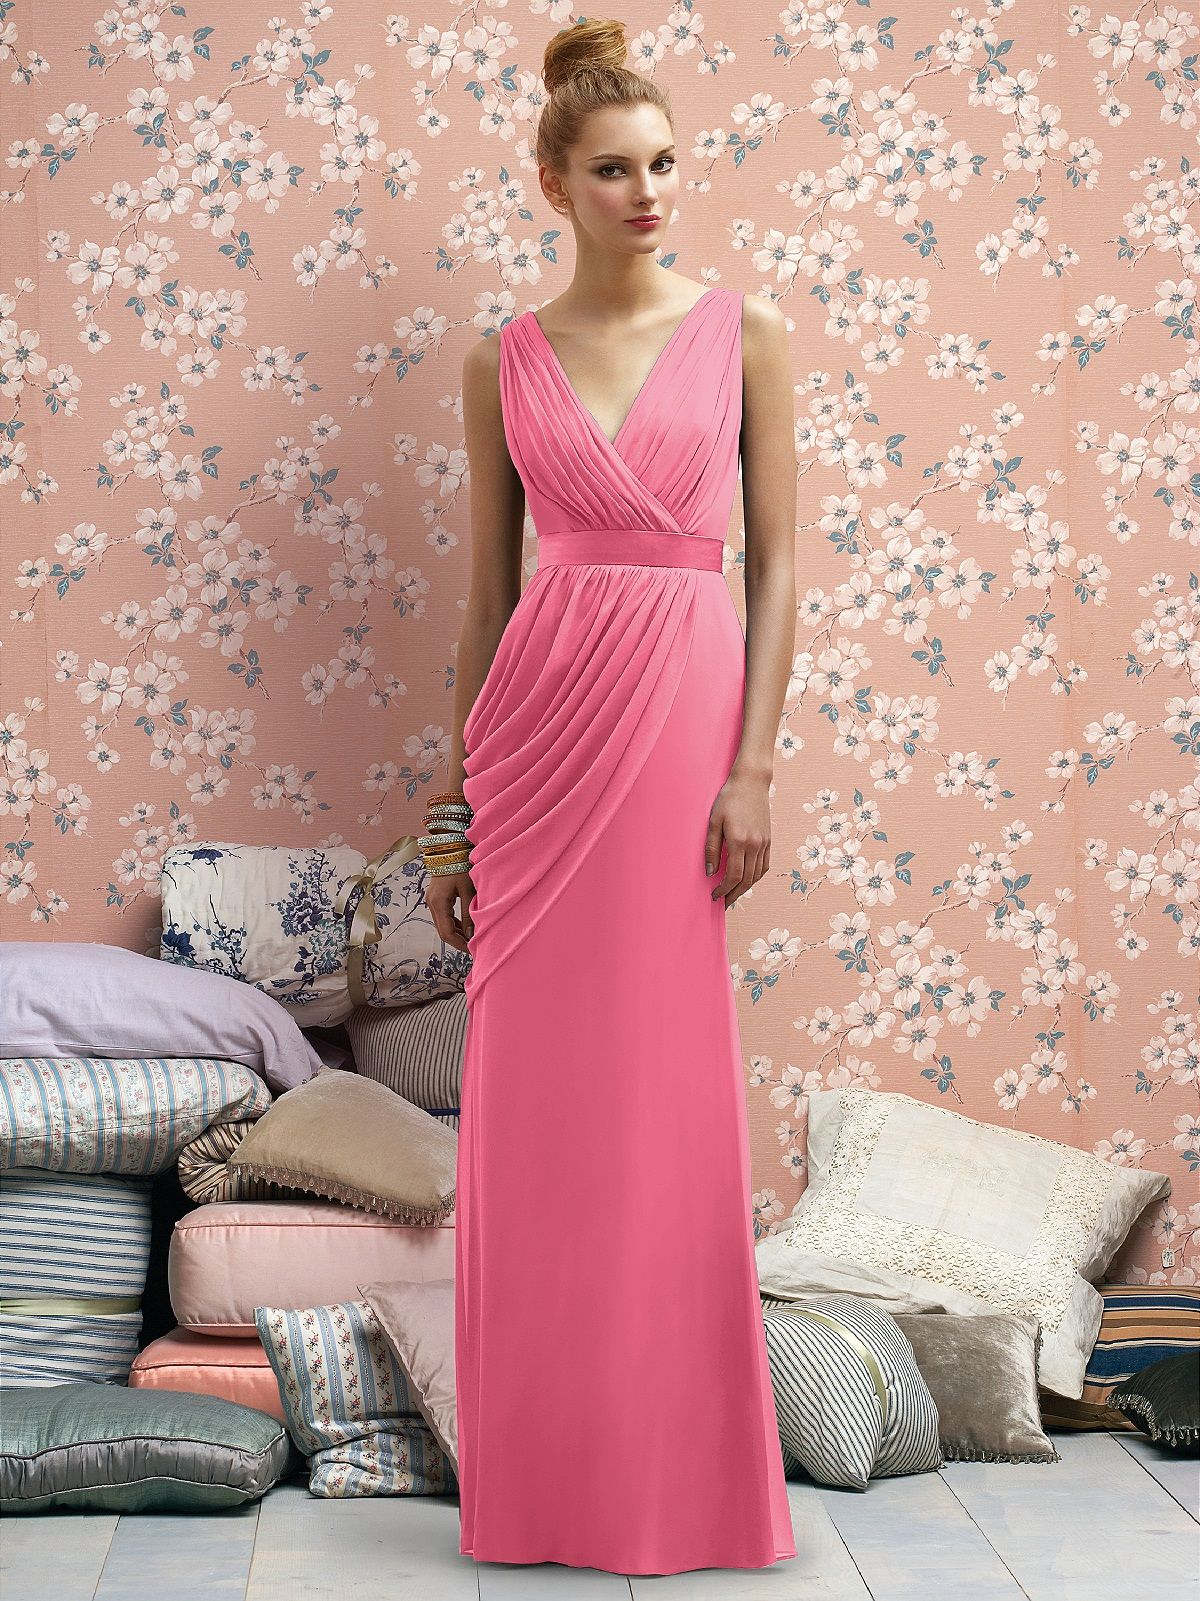 Dorable Lela Rose Lr182 Vestido De Dama Componente - Ideas de ...